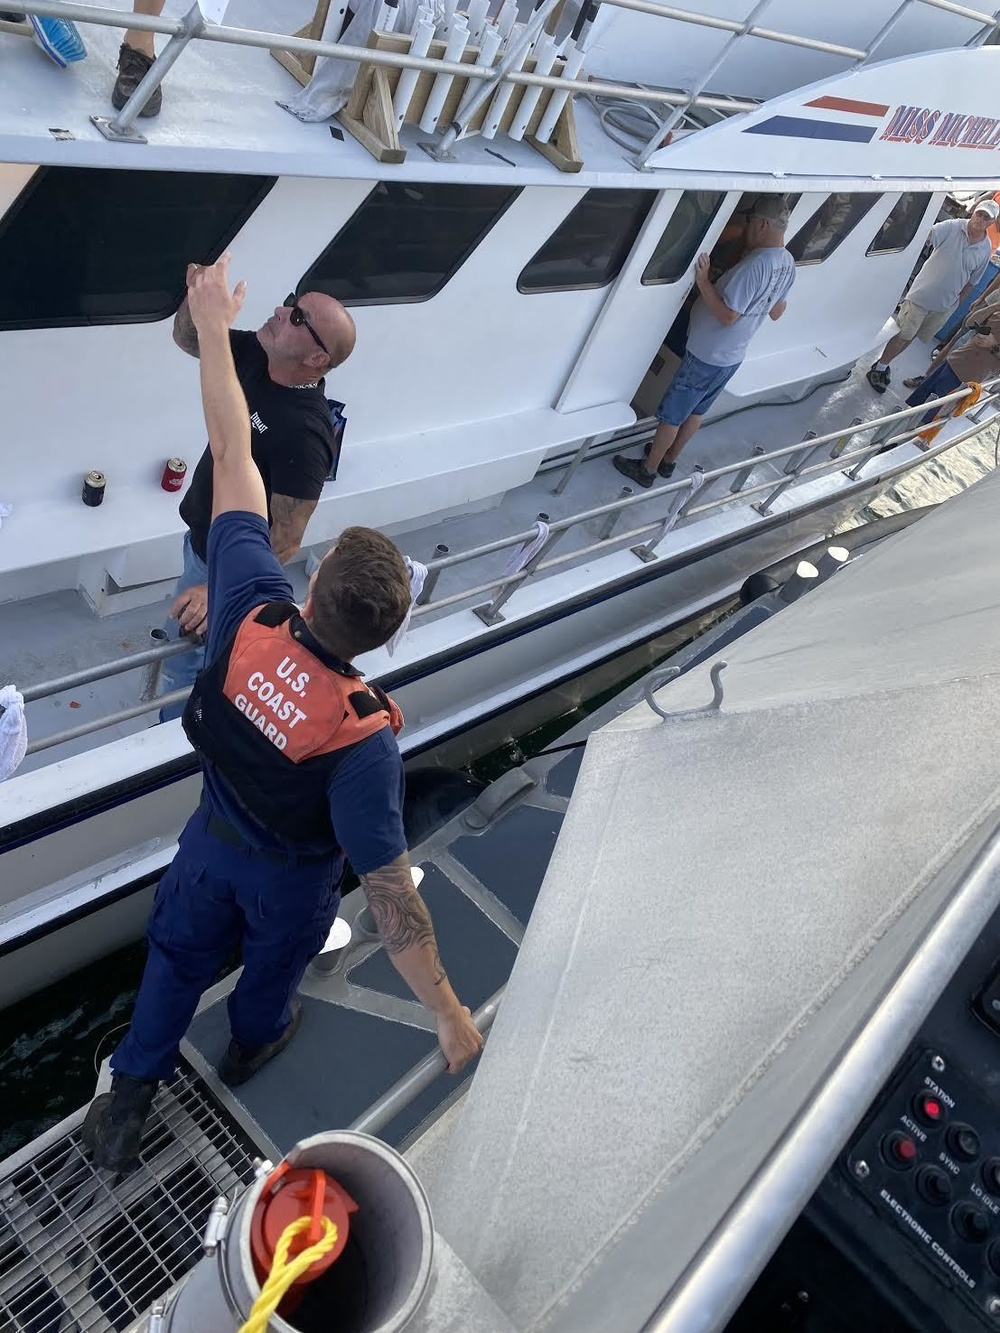 Coast Guard conducts medevac 6 miles northeast of Manasquan Inlet, New Jersey